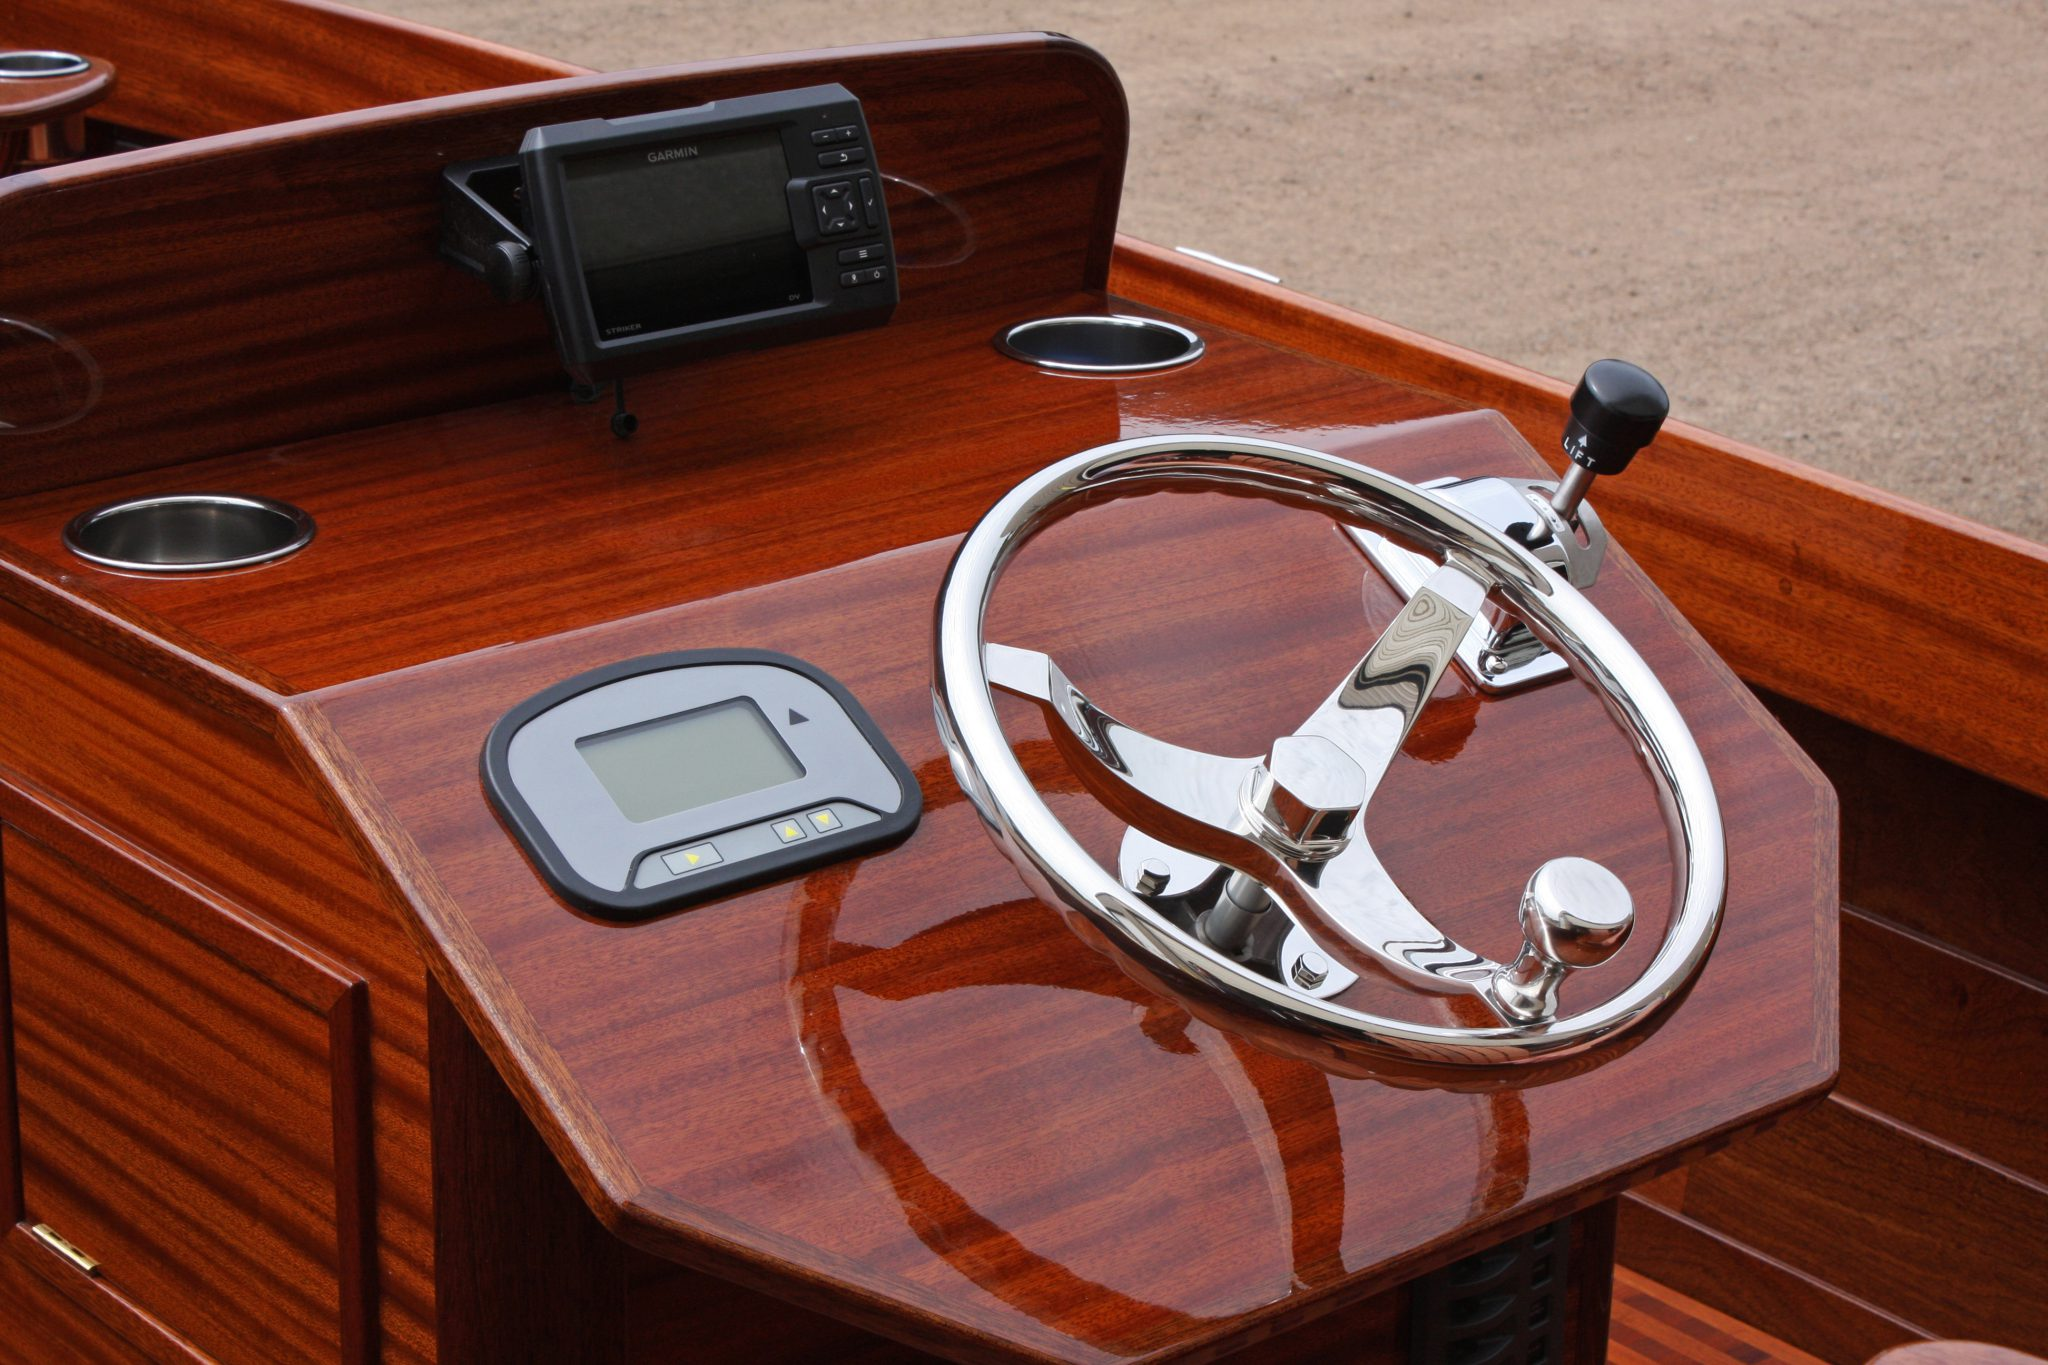 Mahogany console with stainless steering wheel